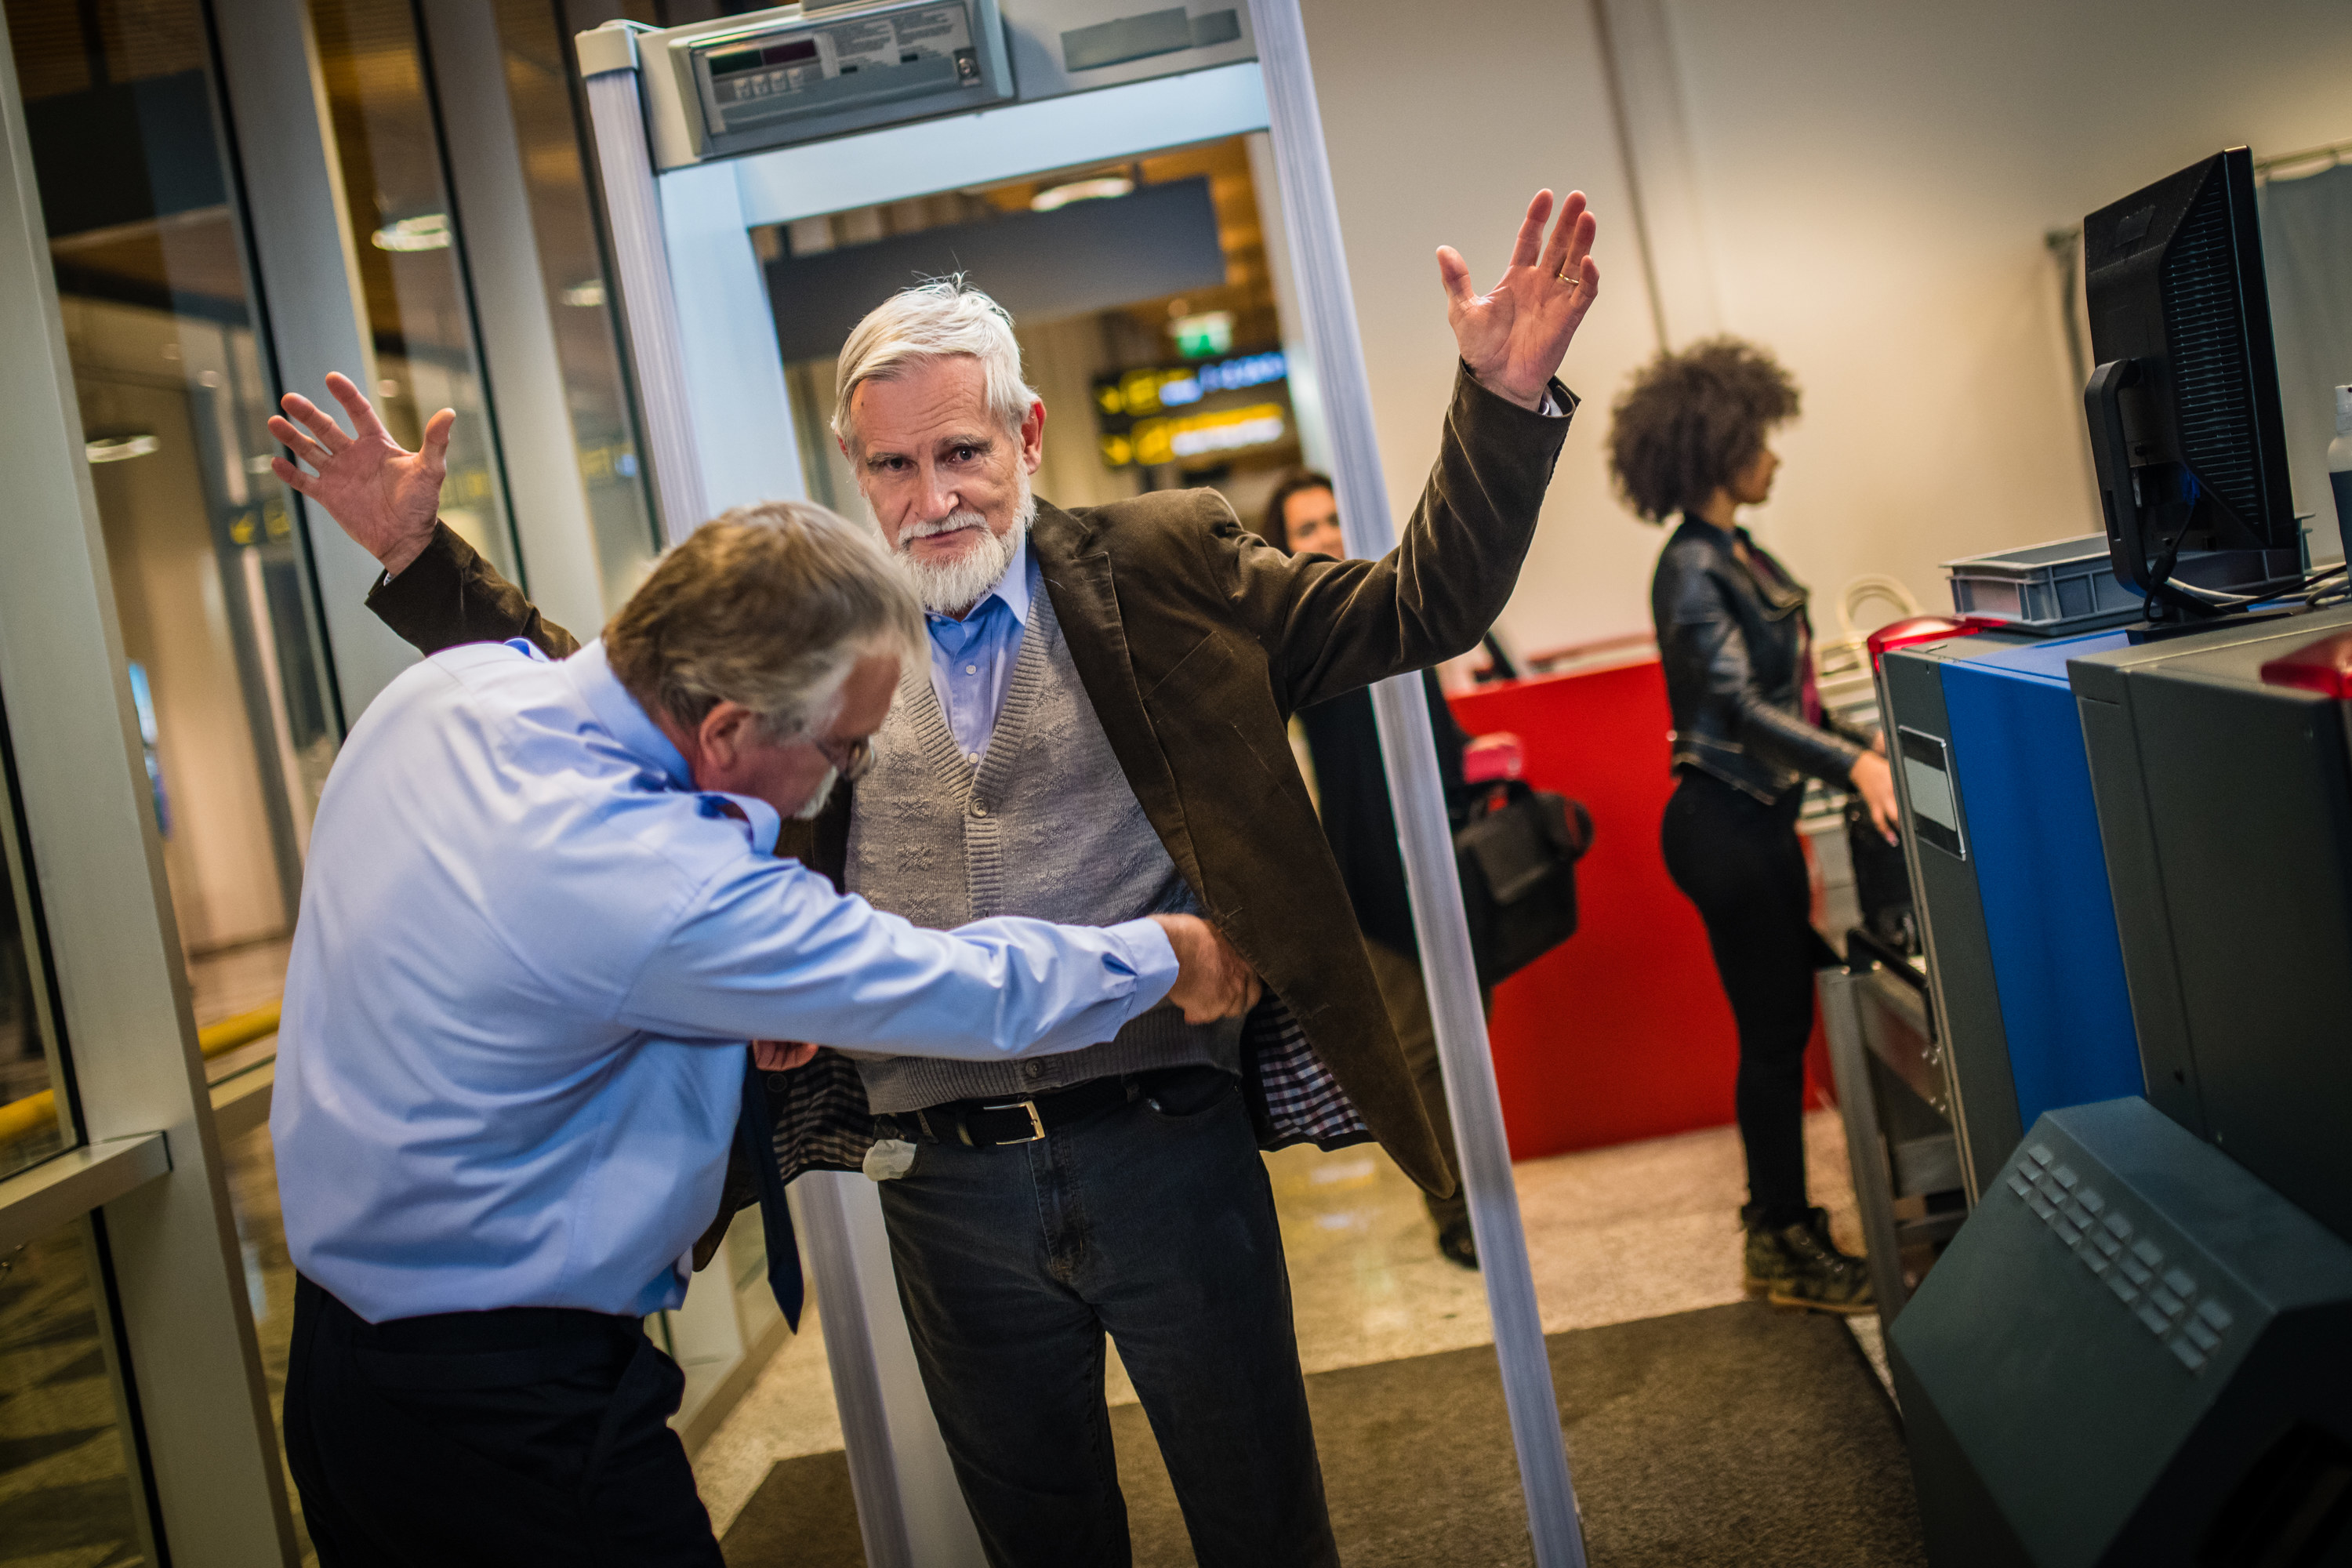 Man at airport getting patted down by airport secuirty